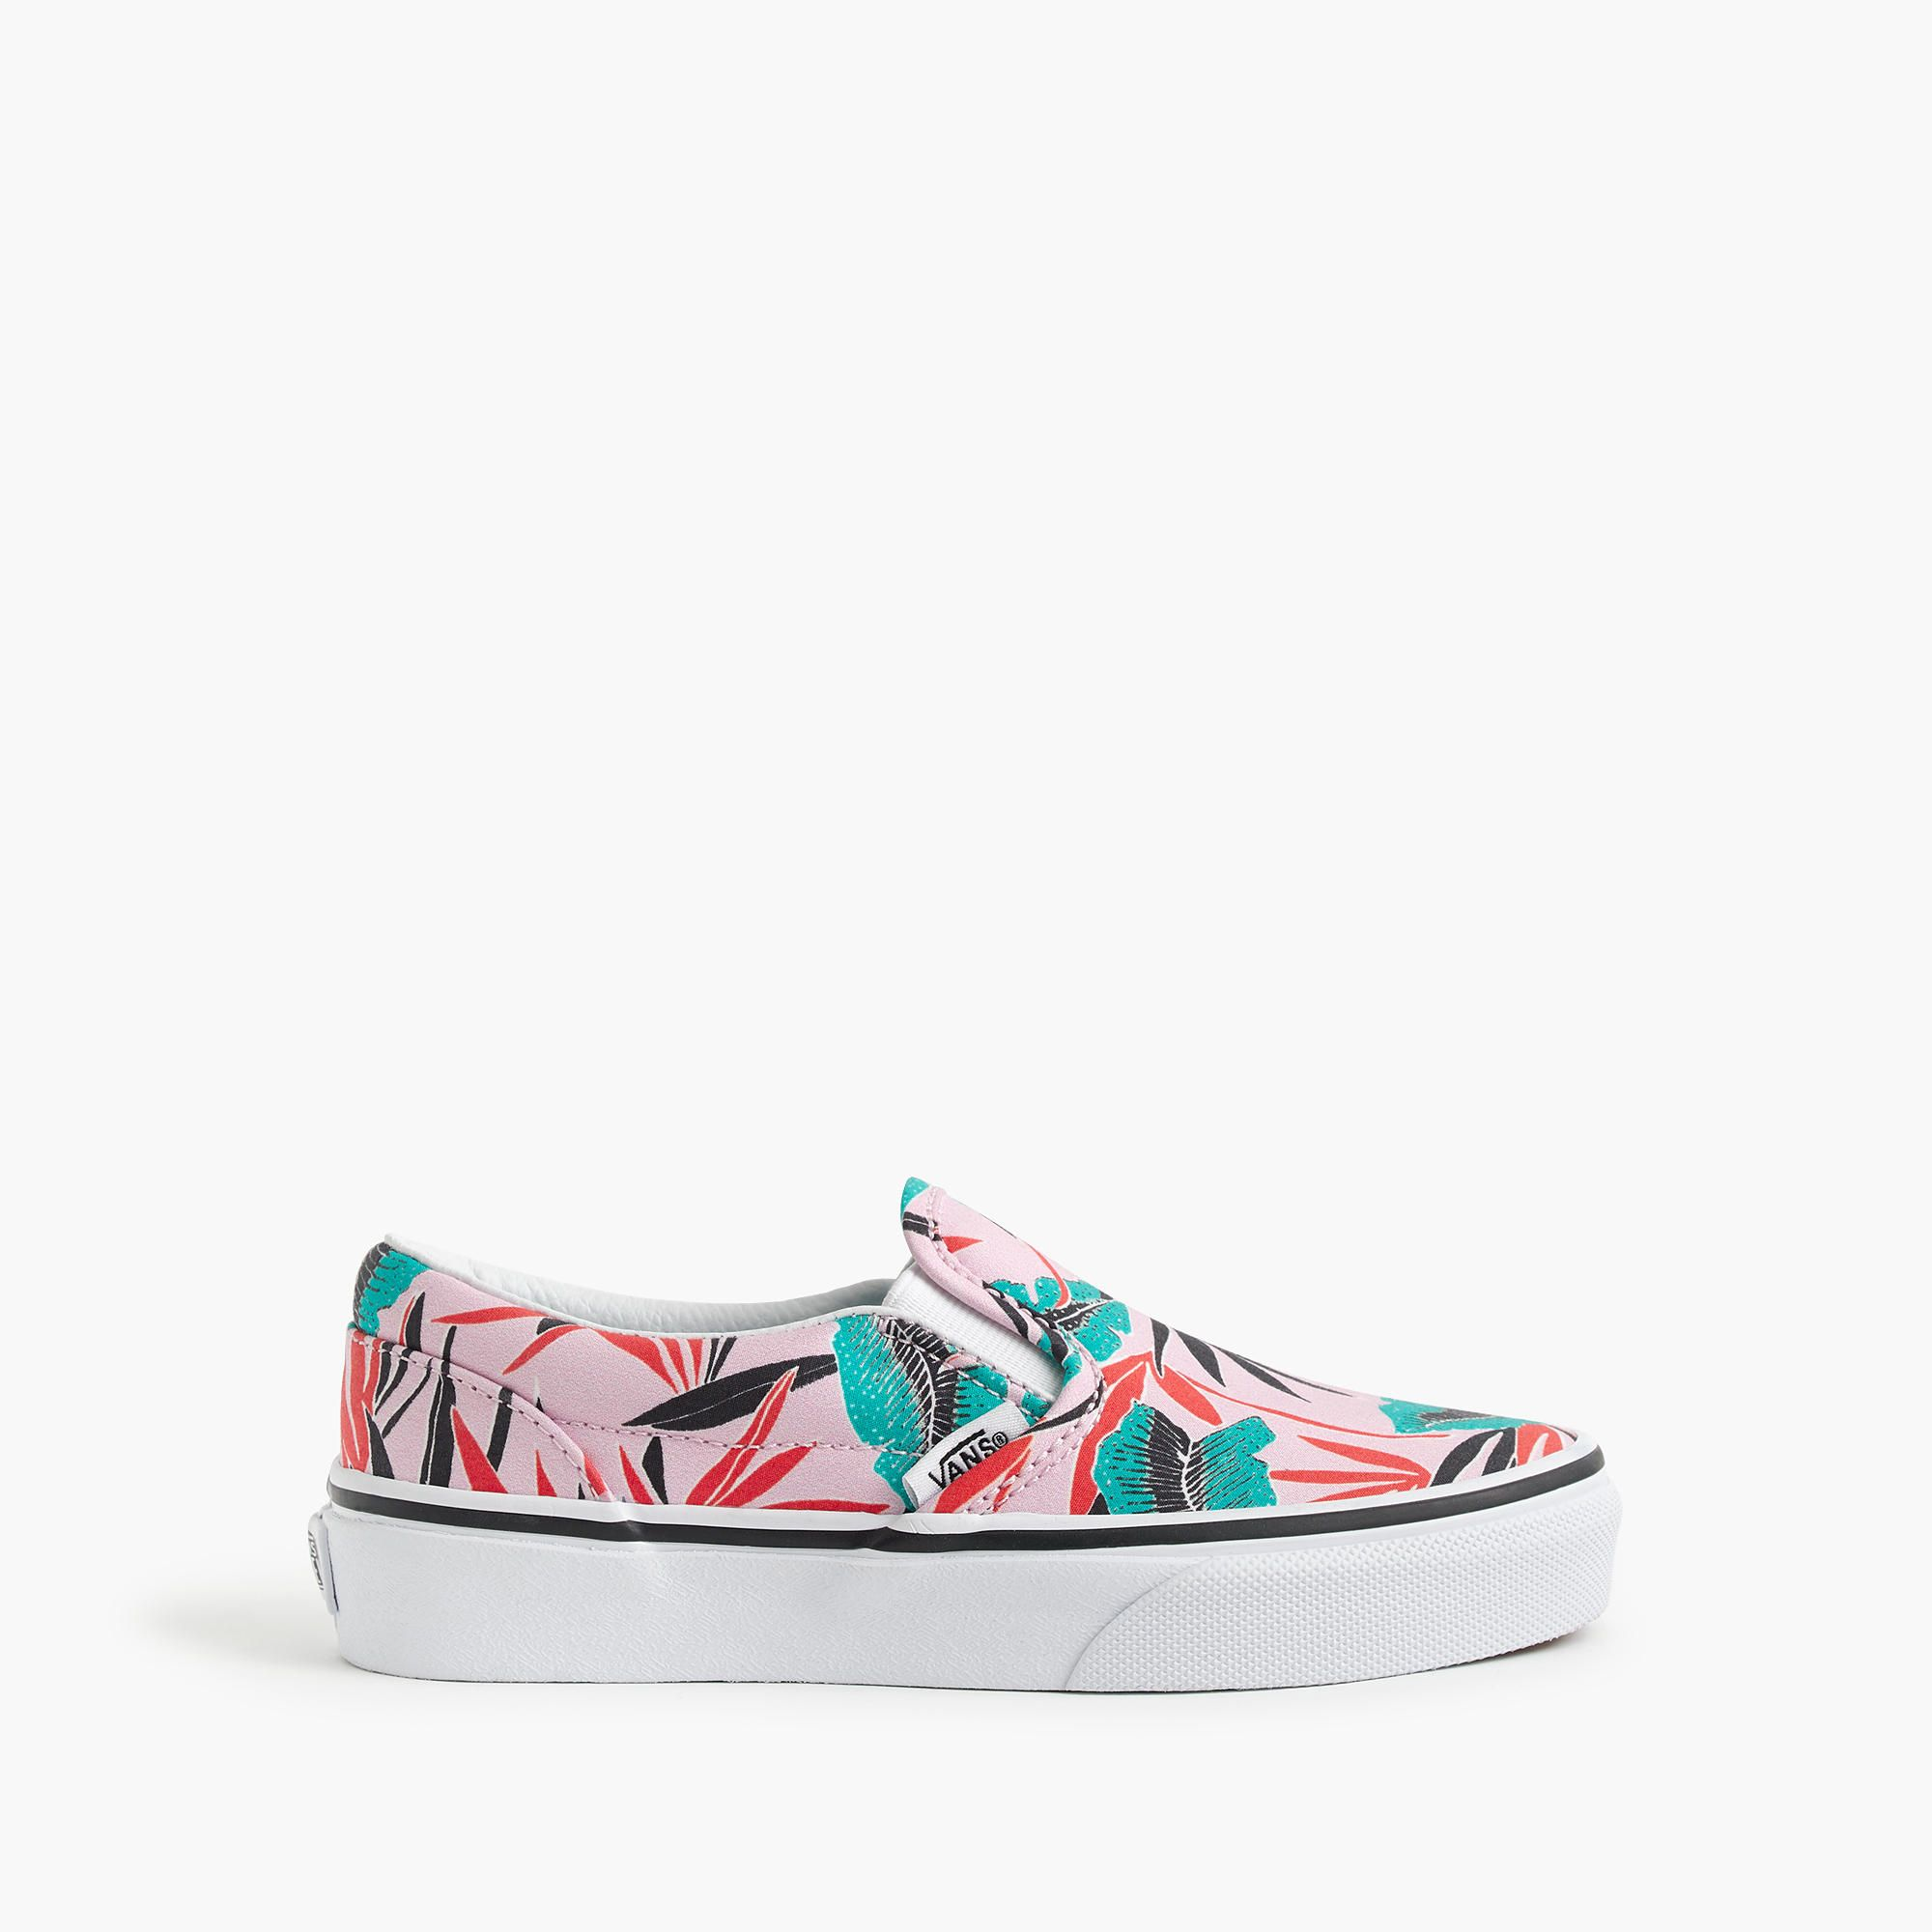 caf3a008d79cf2 Kids  Vans® classic slip-on sneakers in tropical palm print   Girl sneakers